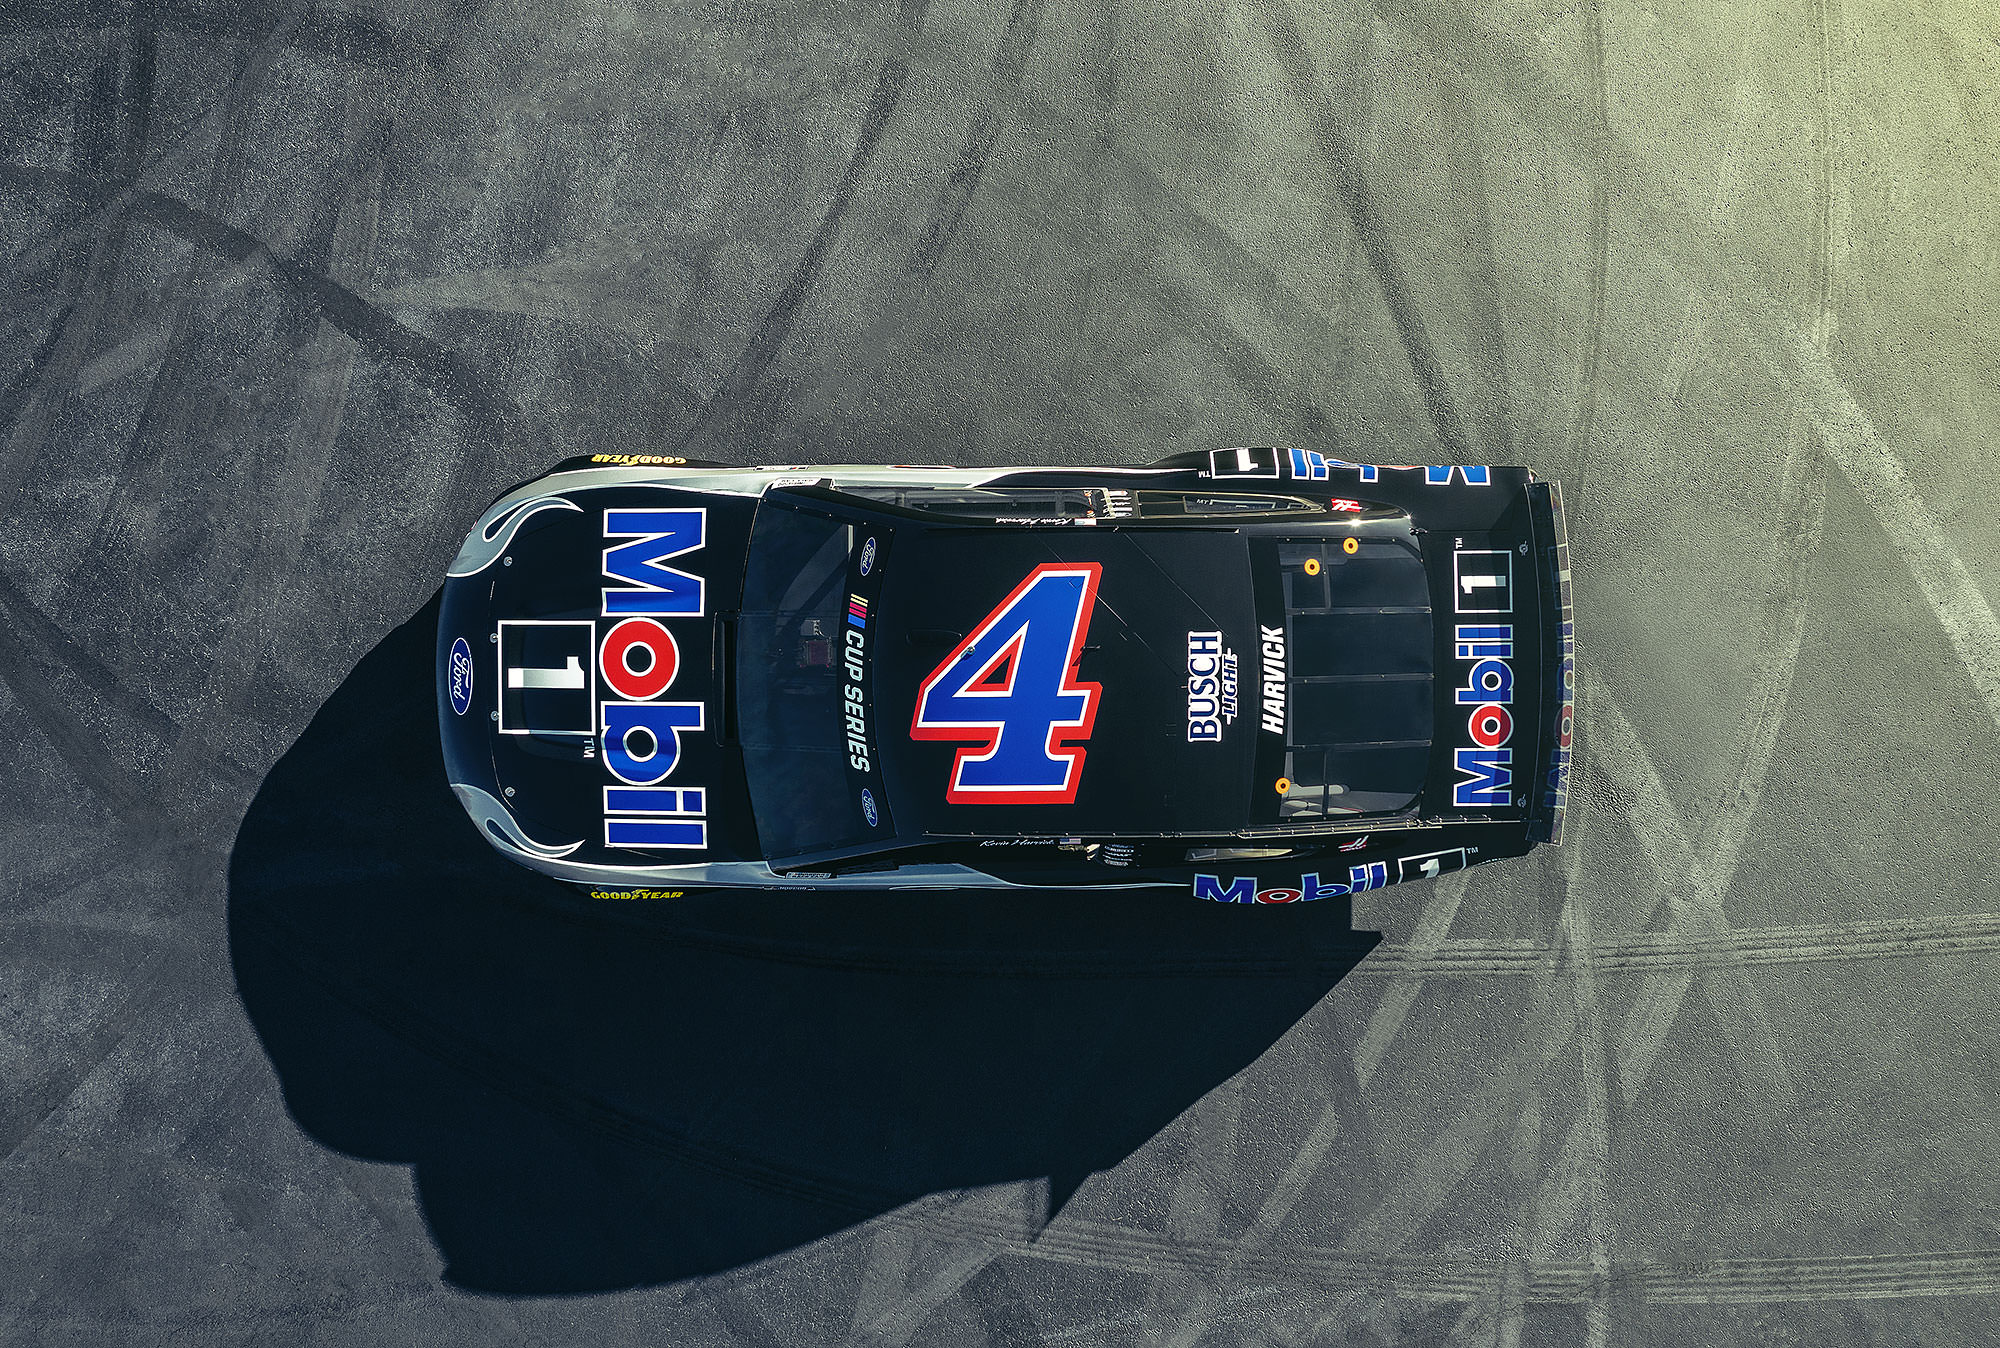 Mobil 1 NASCAR Ford Mustang Clint Bowyer commercial photography